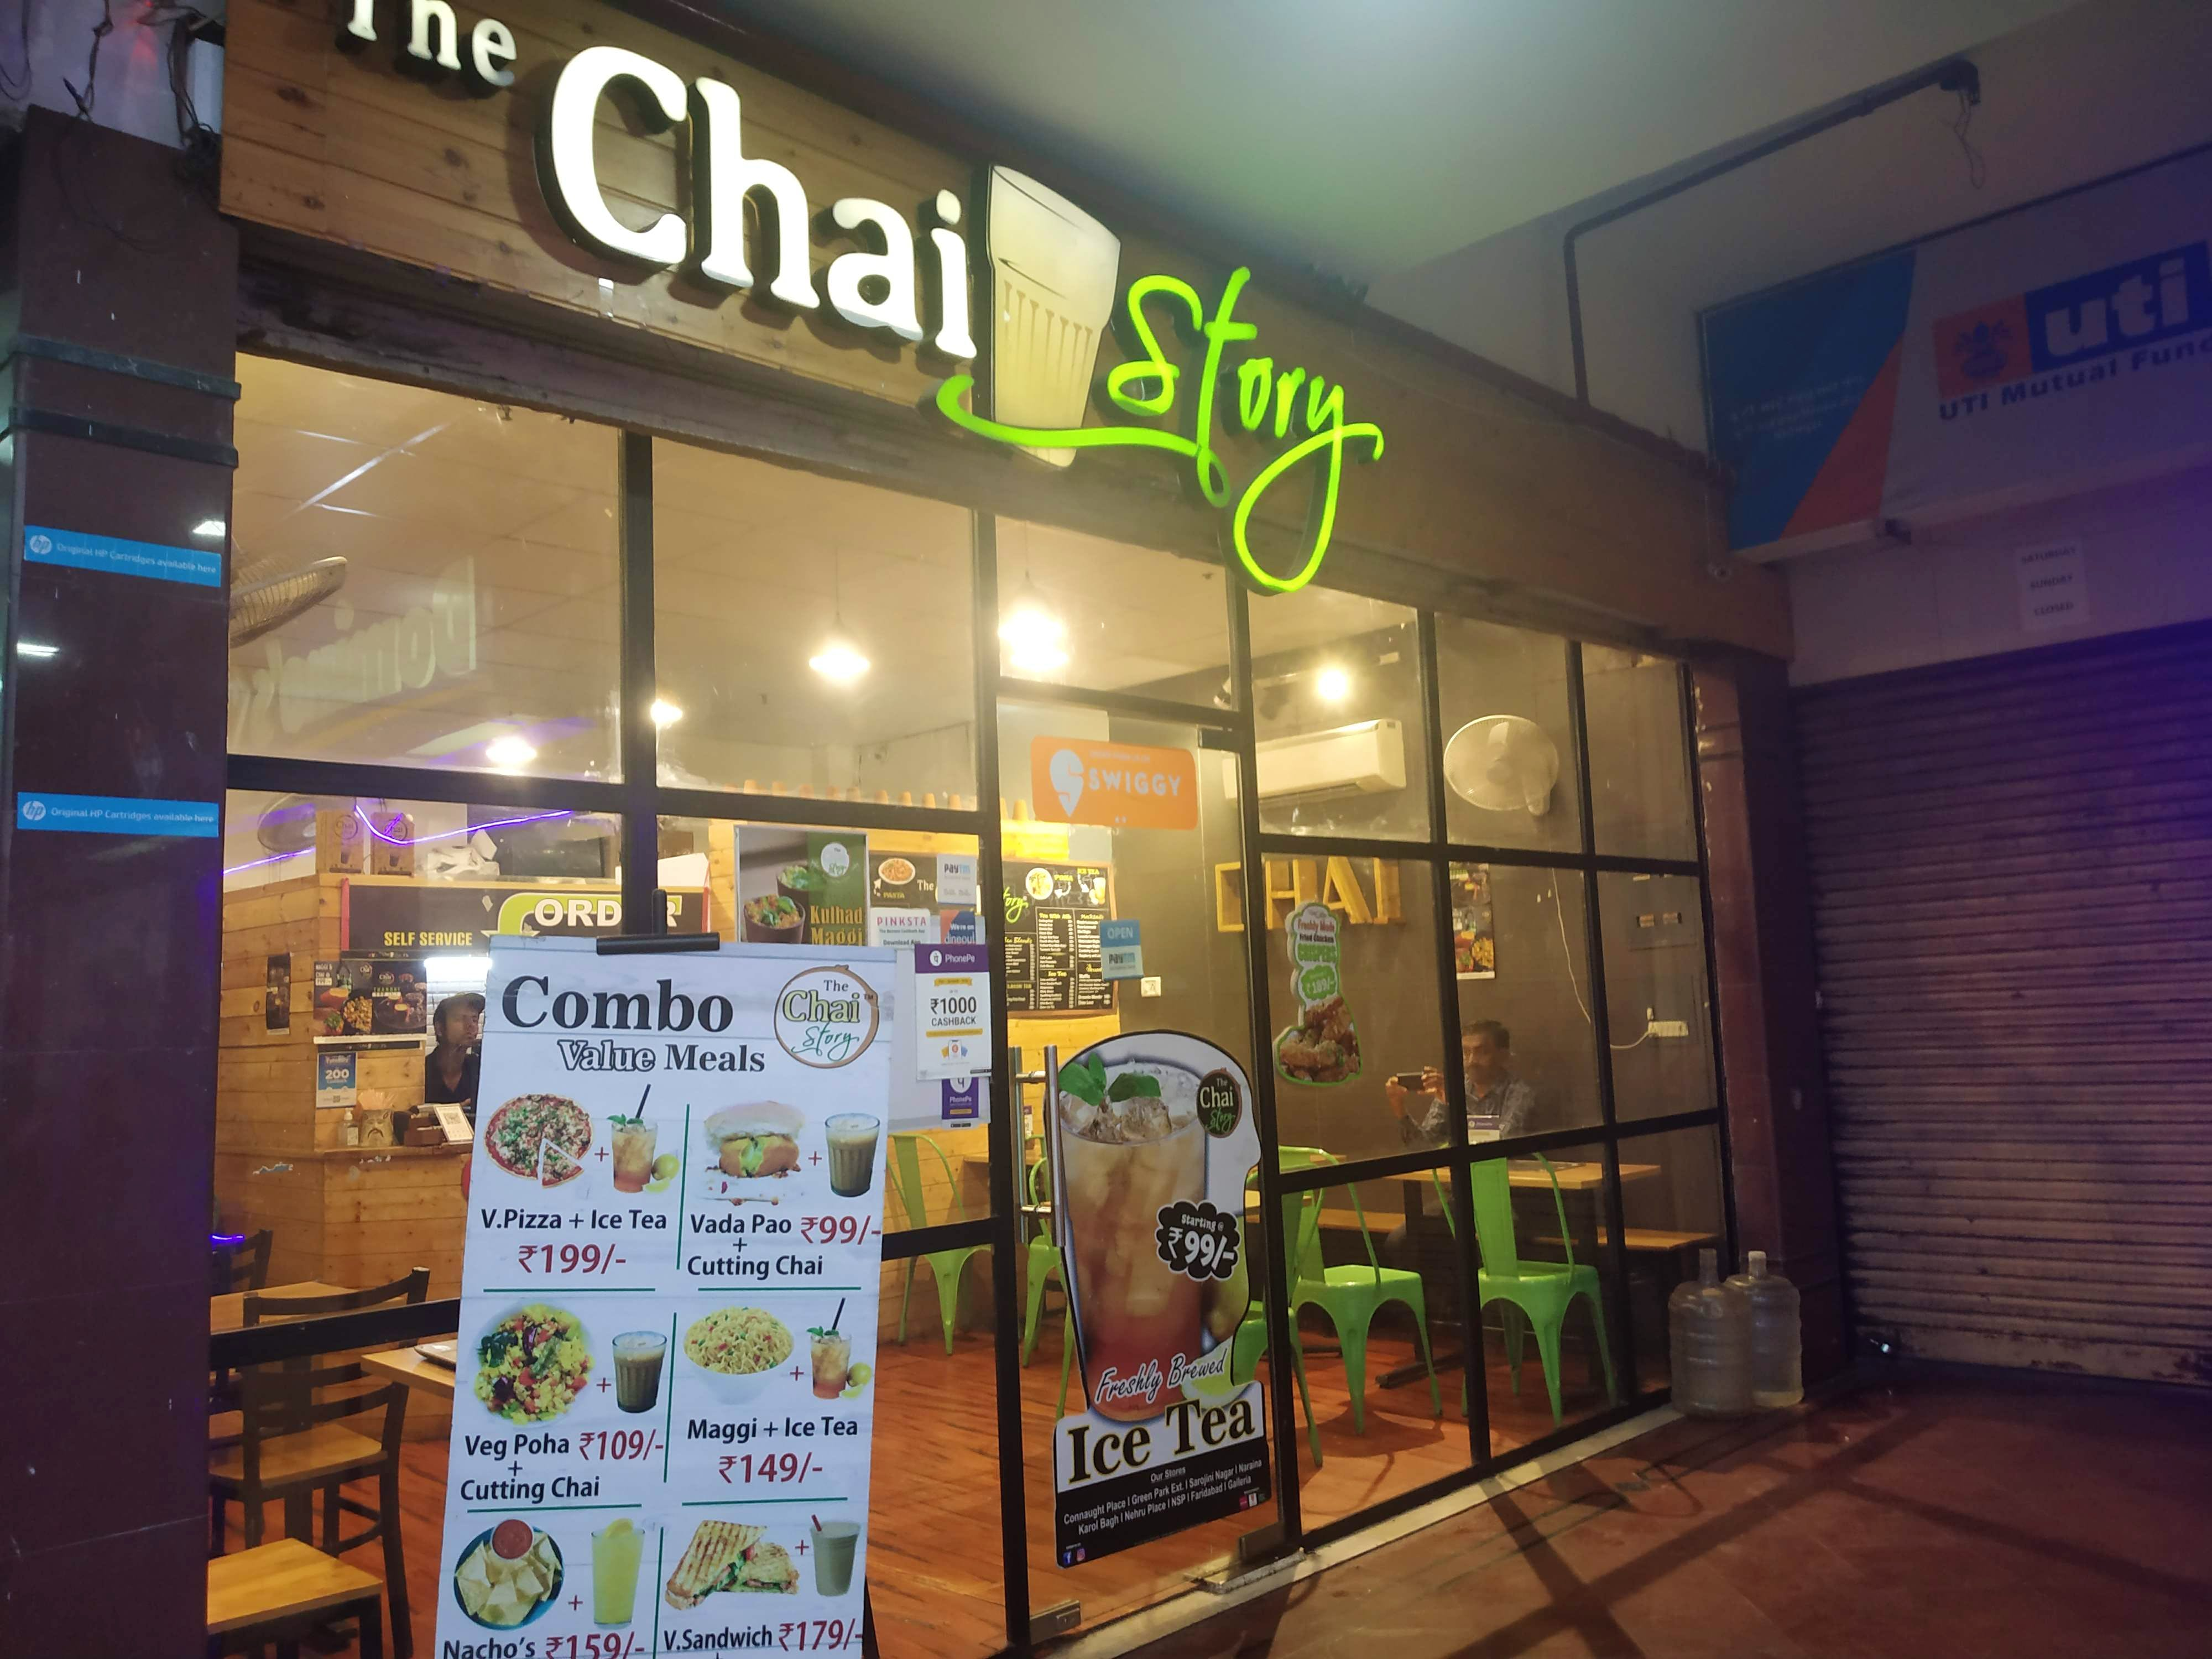 image - The Chai Story